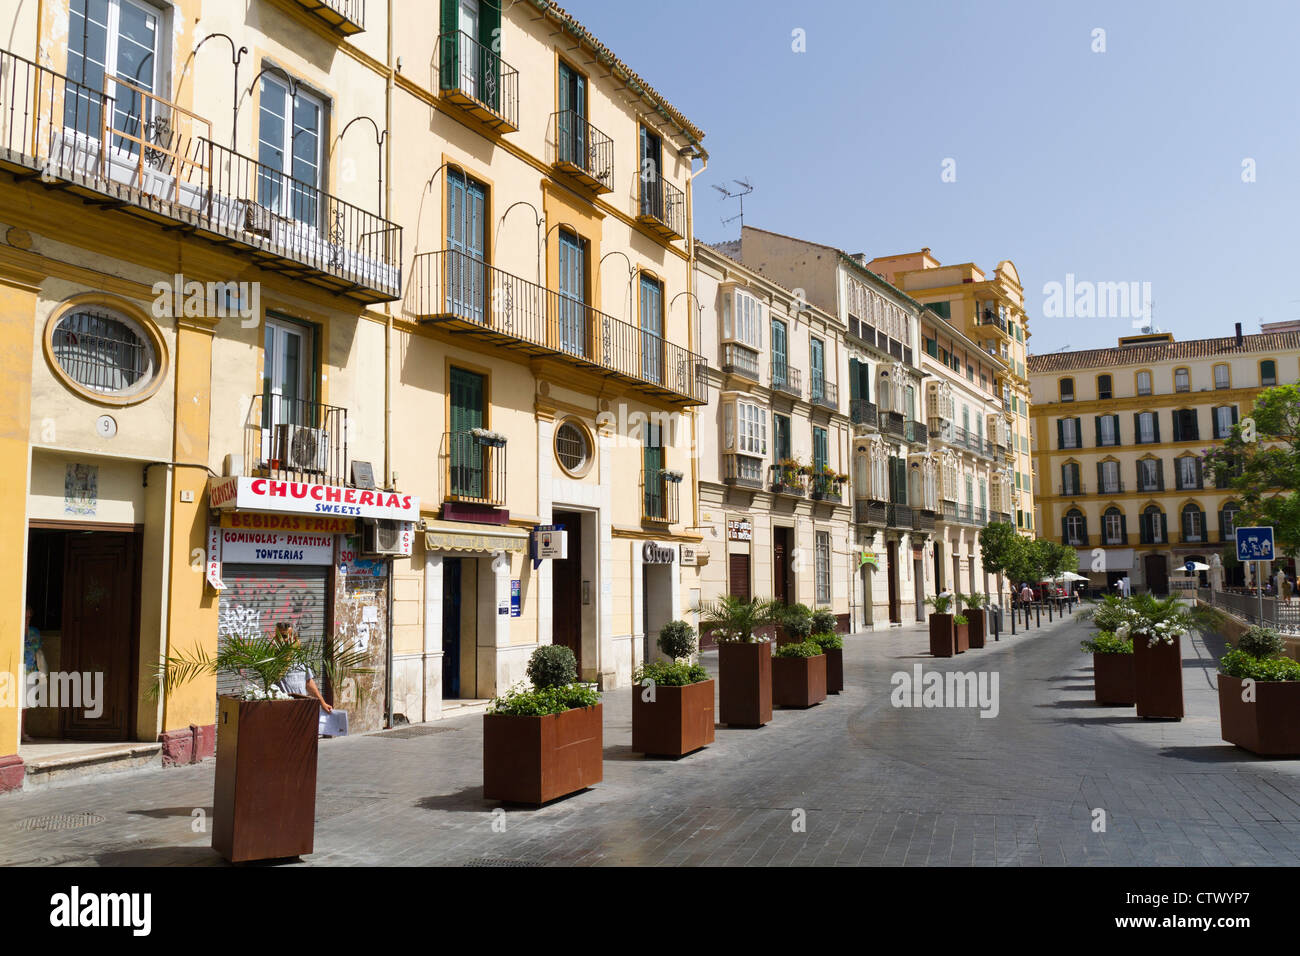 Small Shops Below Apartments In The Malaga Old Town Spain